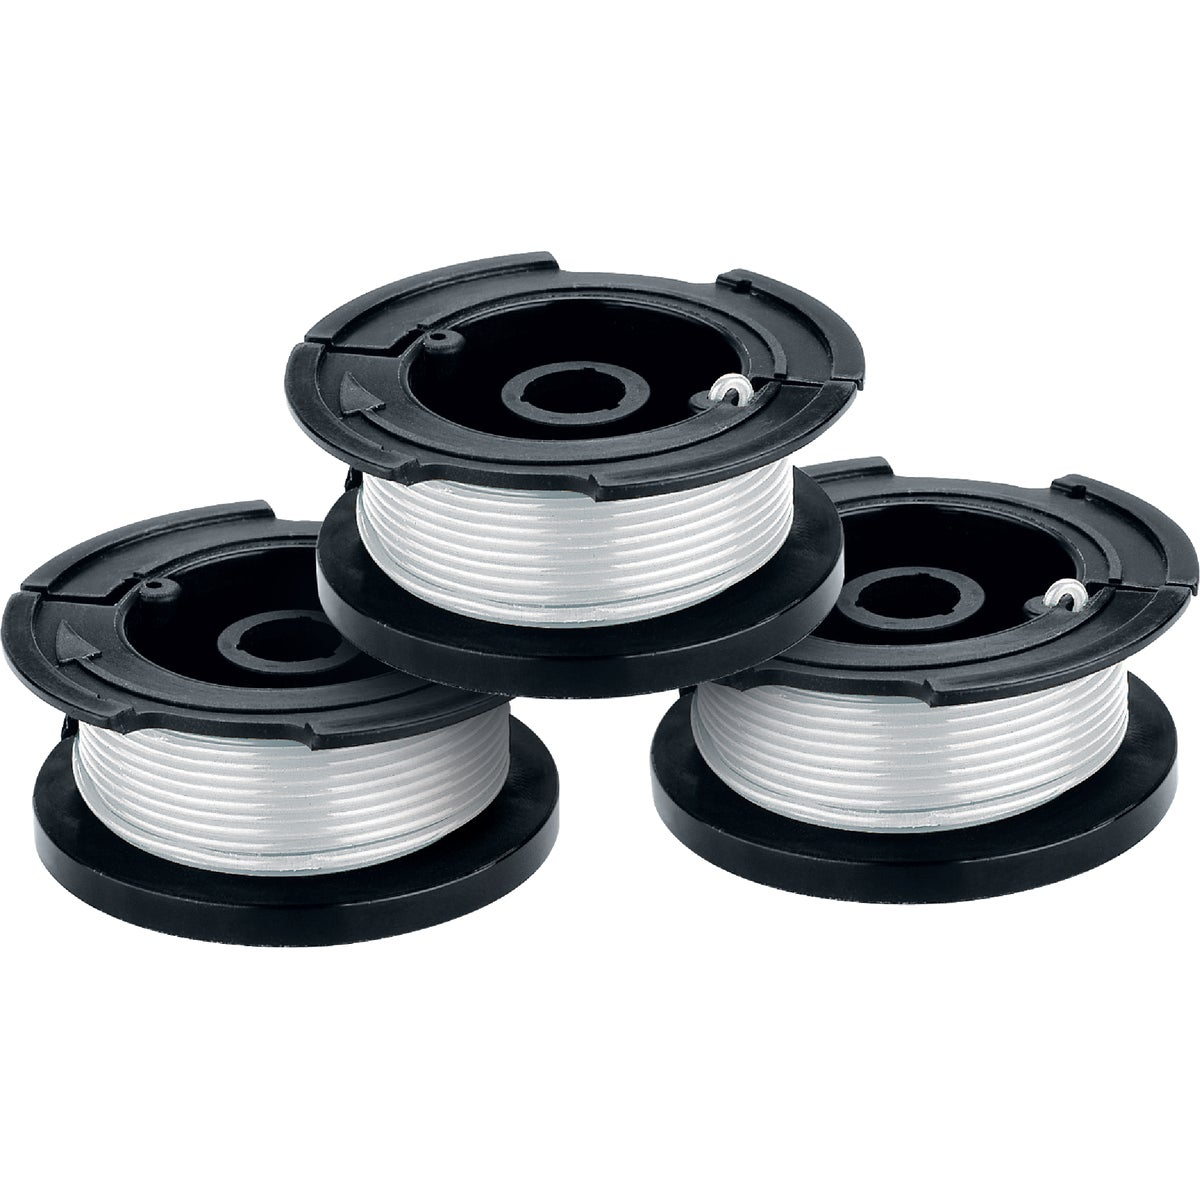 3 PACK TRIMMER SPOOLS